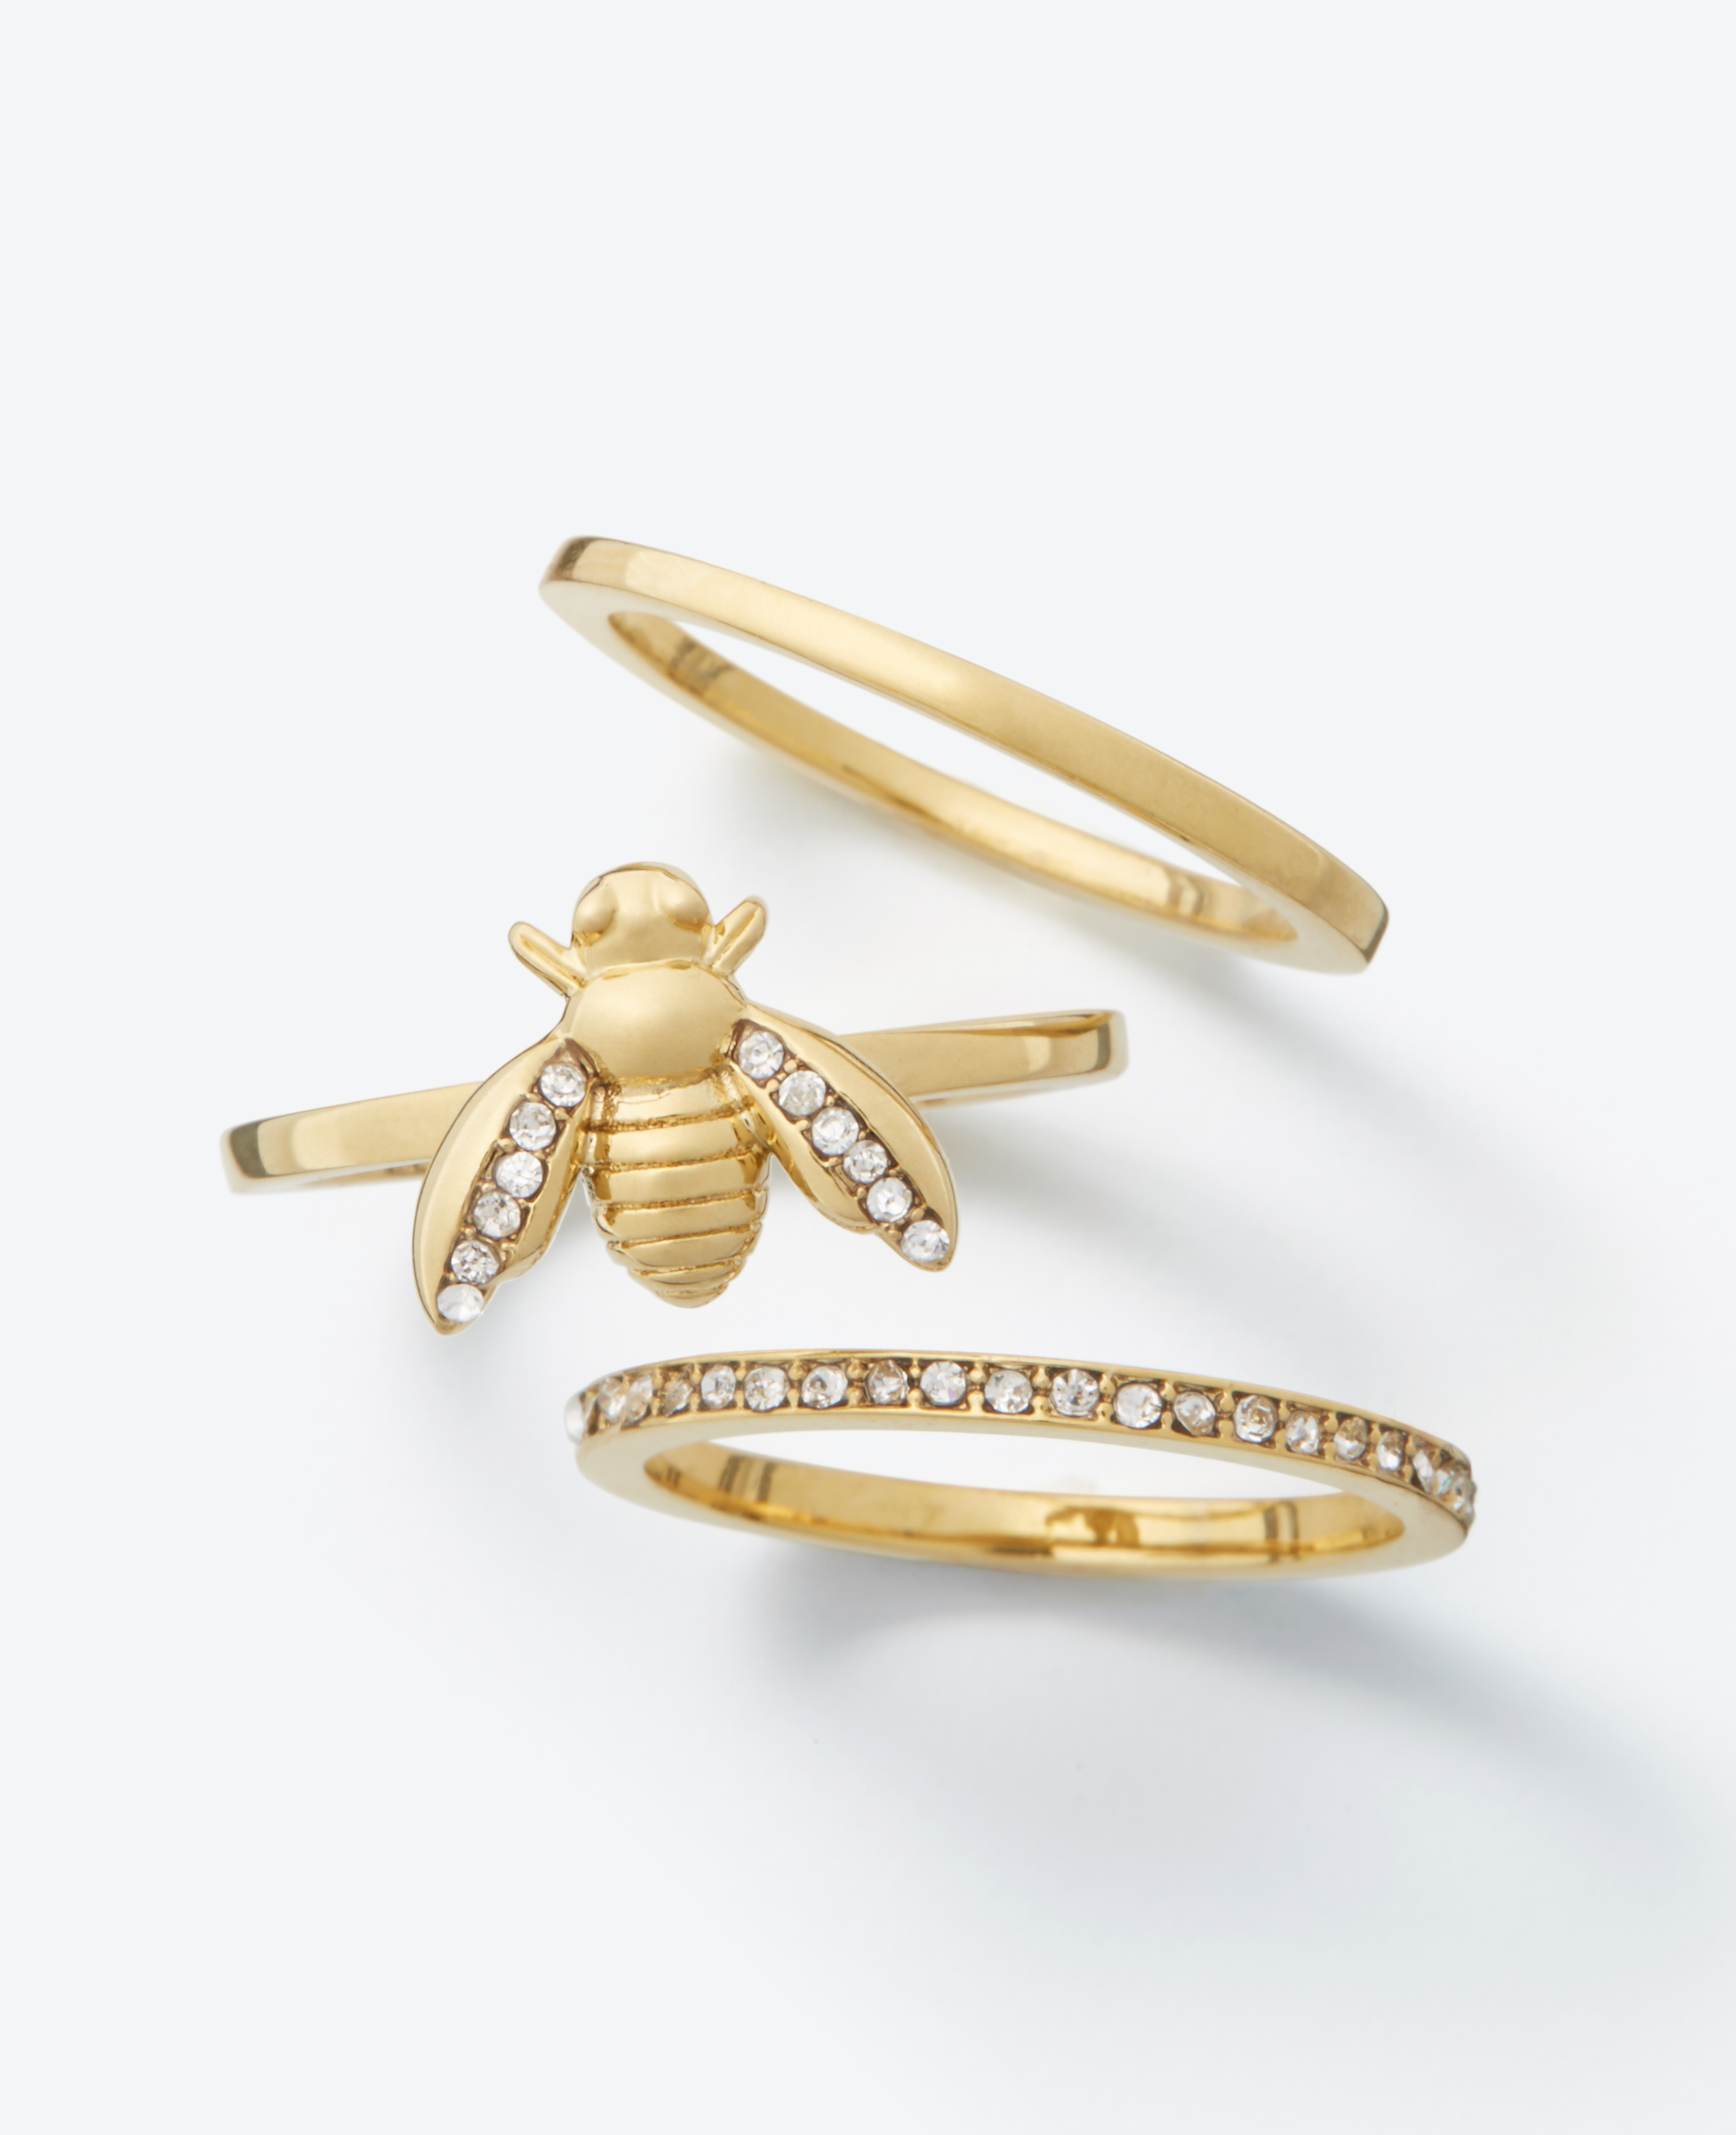 Bumble Bee Rings Jewelry